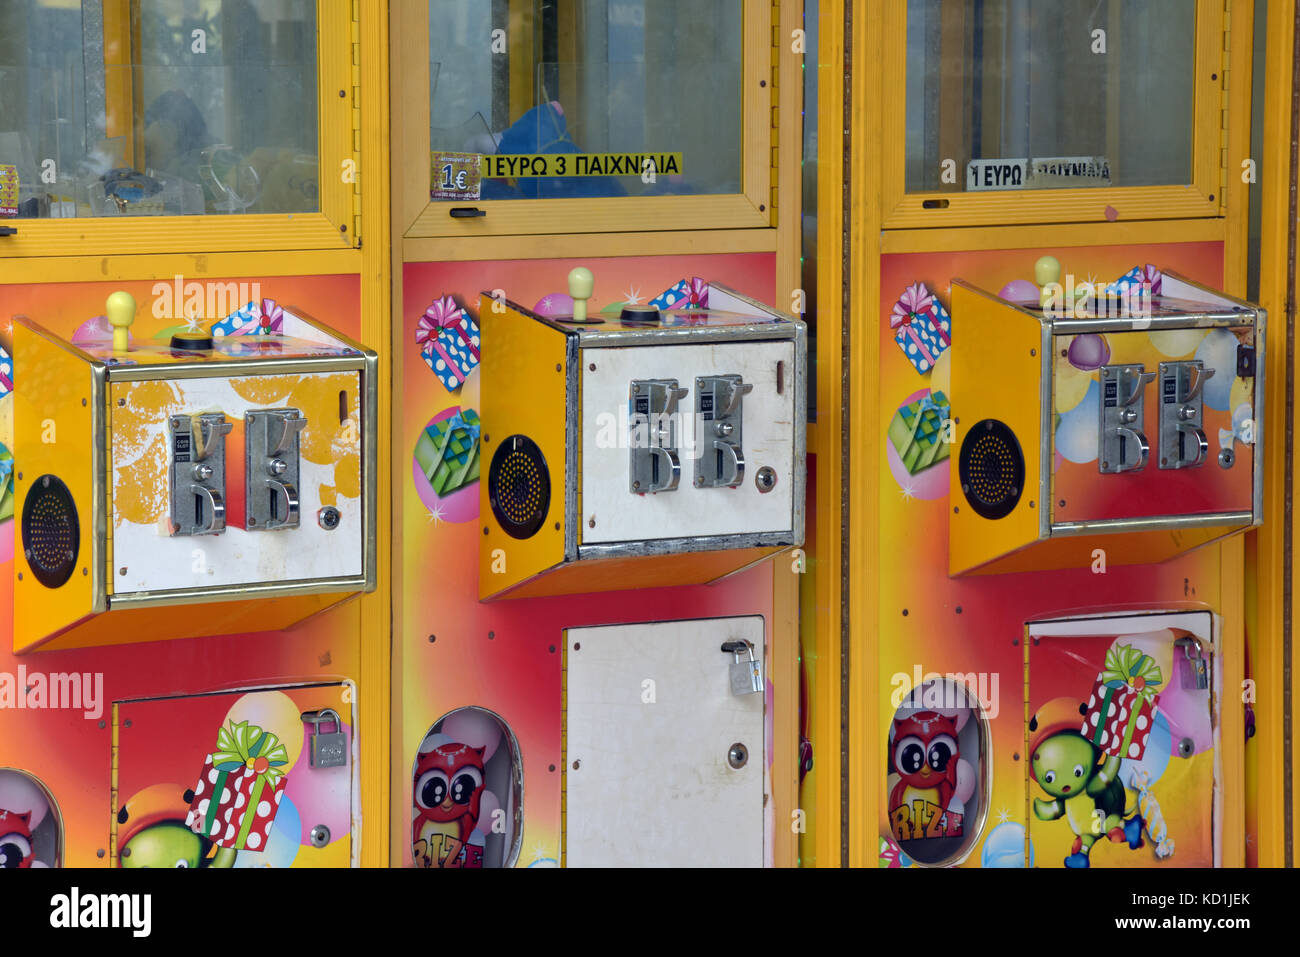 yellow or brightly painted coin mechanisms on amusement arcade machines . coin operated vending or amusement gifts - Stock Image